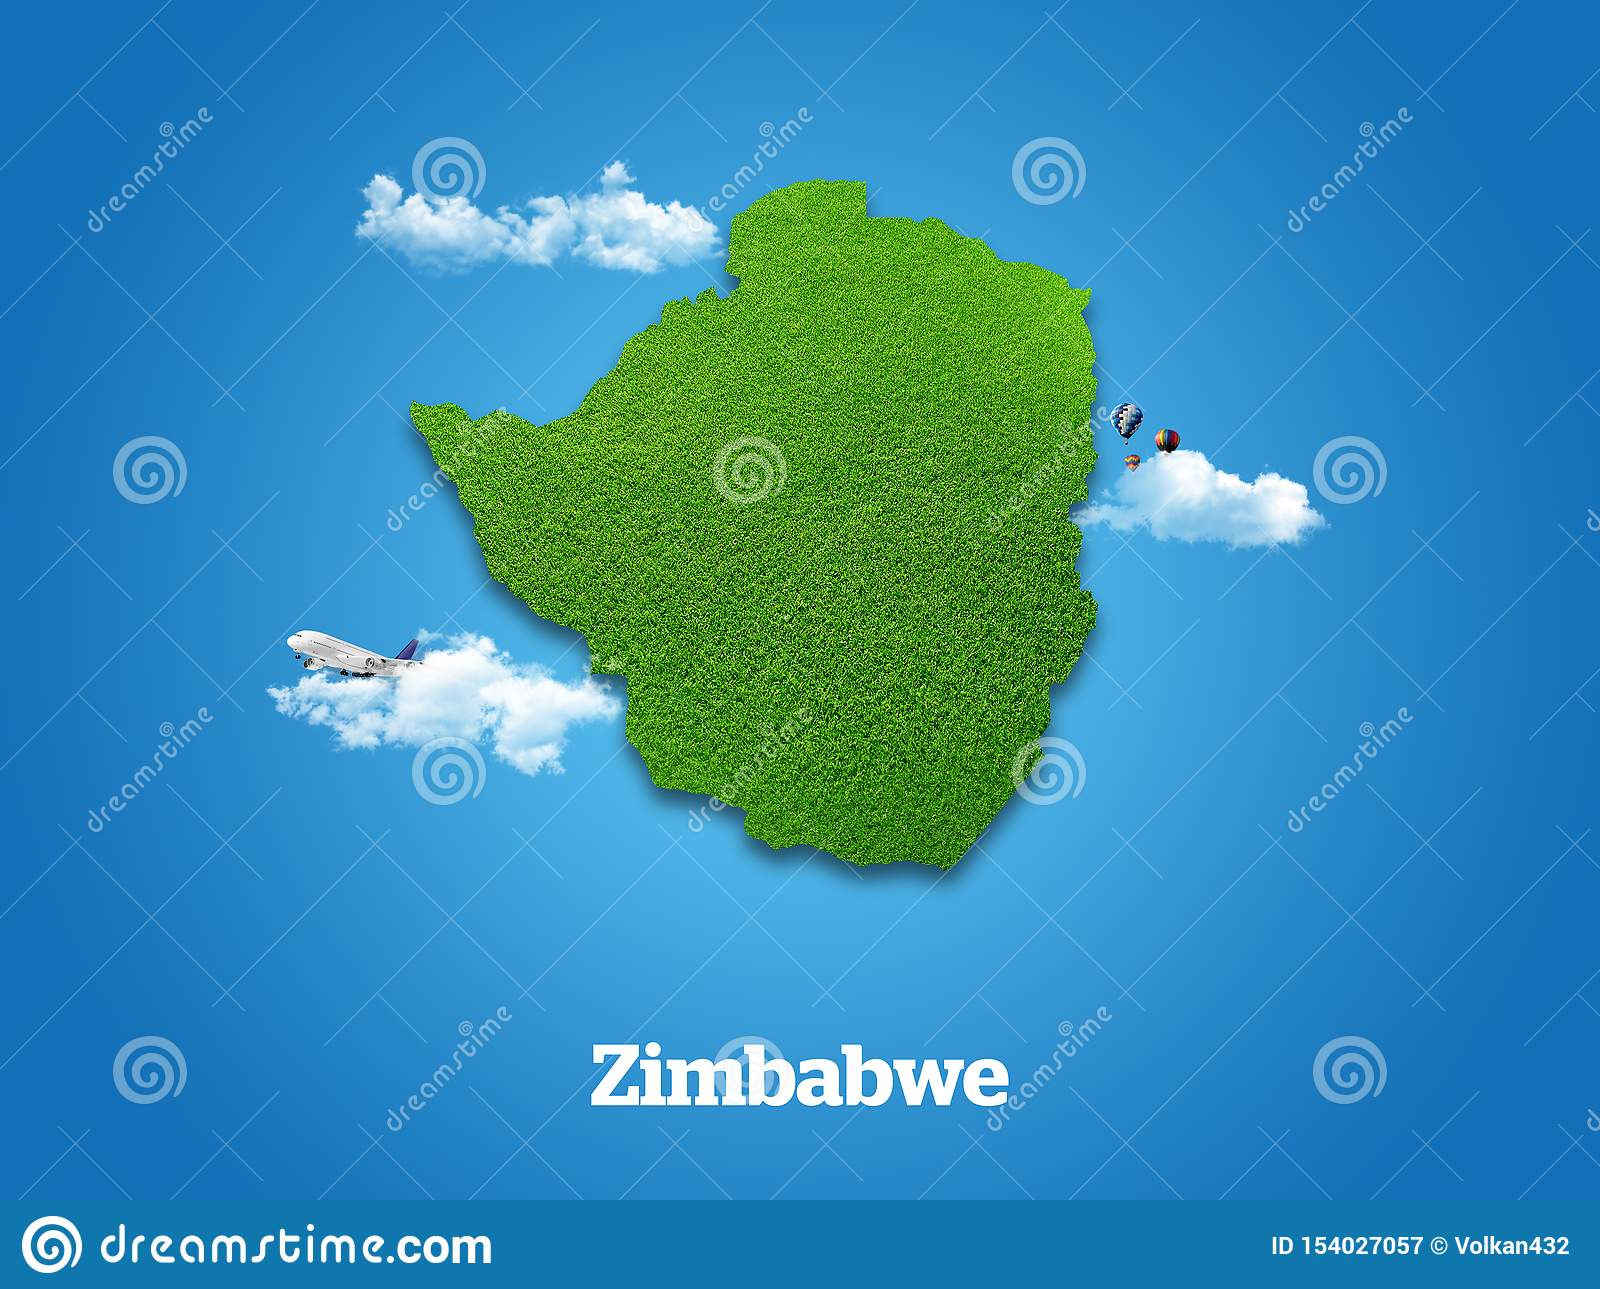 Zimbabwe Map. Green grass, sky and cloudy concept.